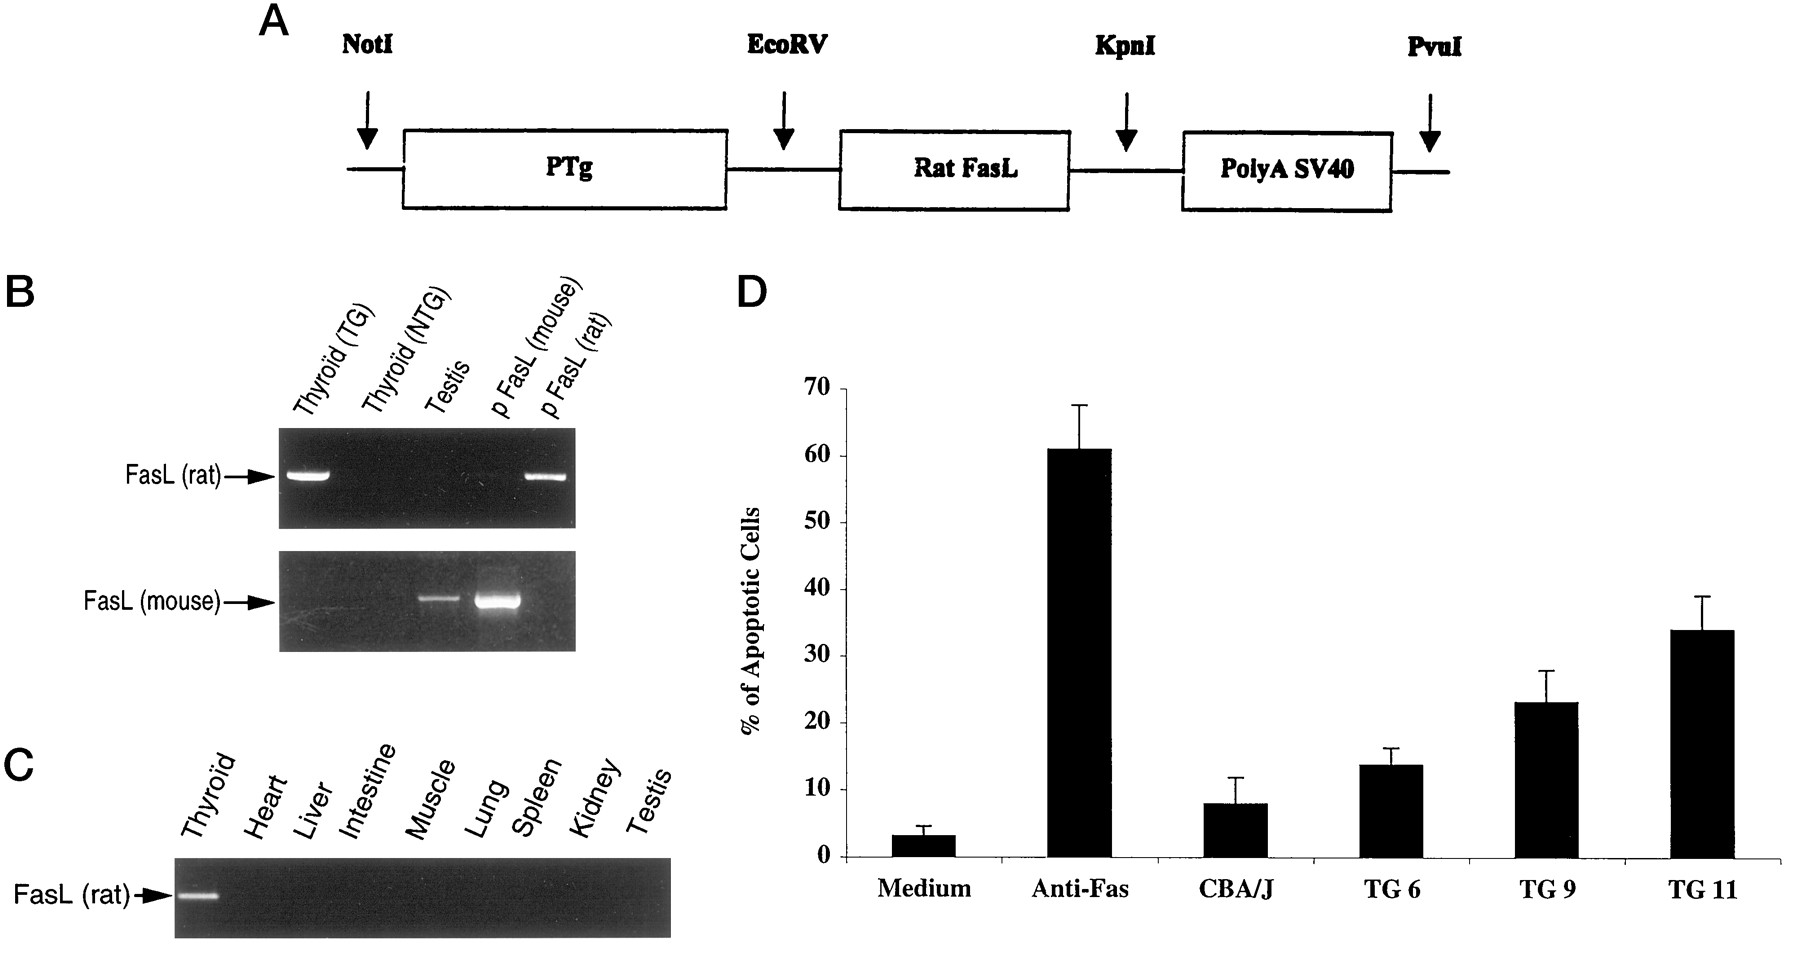 Transgenic Expression Of Fas Ligand On Thyroid Follicular Cells Figure Ptg Type High Frequency Generator Circuit Download